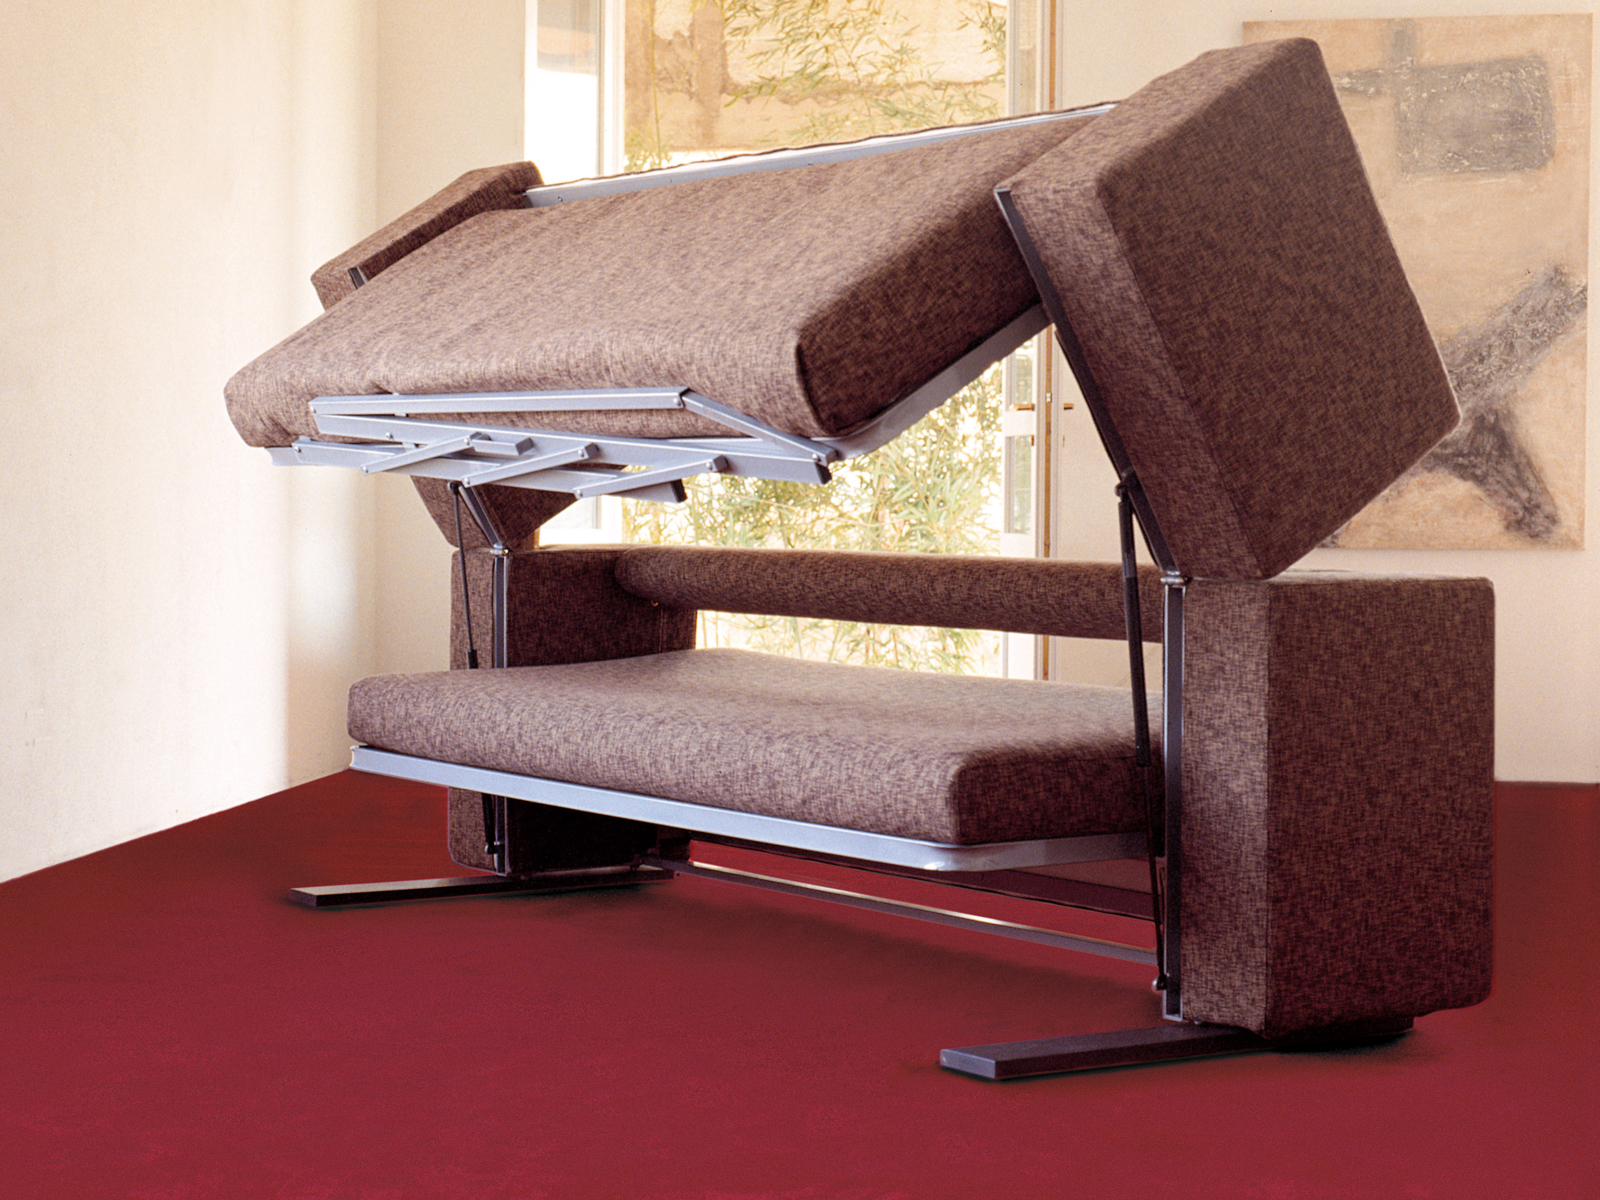 inspirational innovative multifunctional sofa by designer giulio manzoni